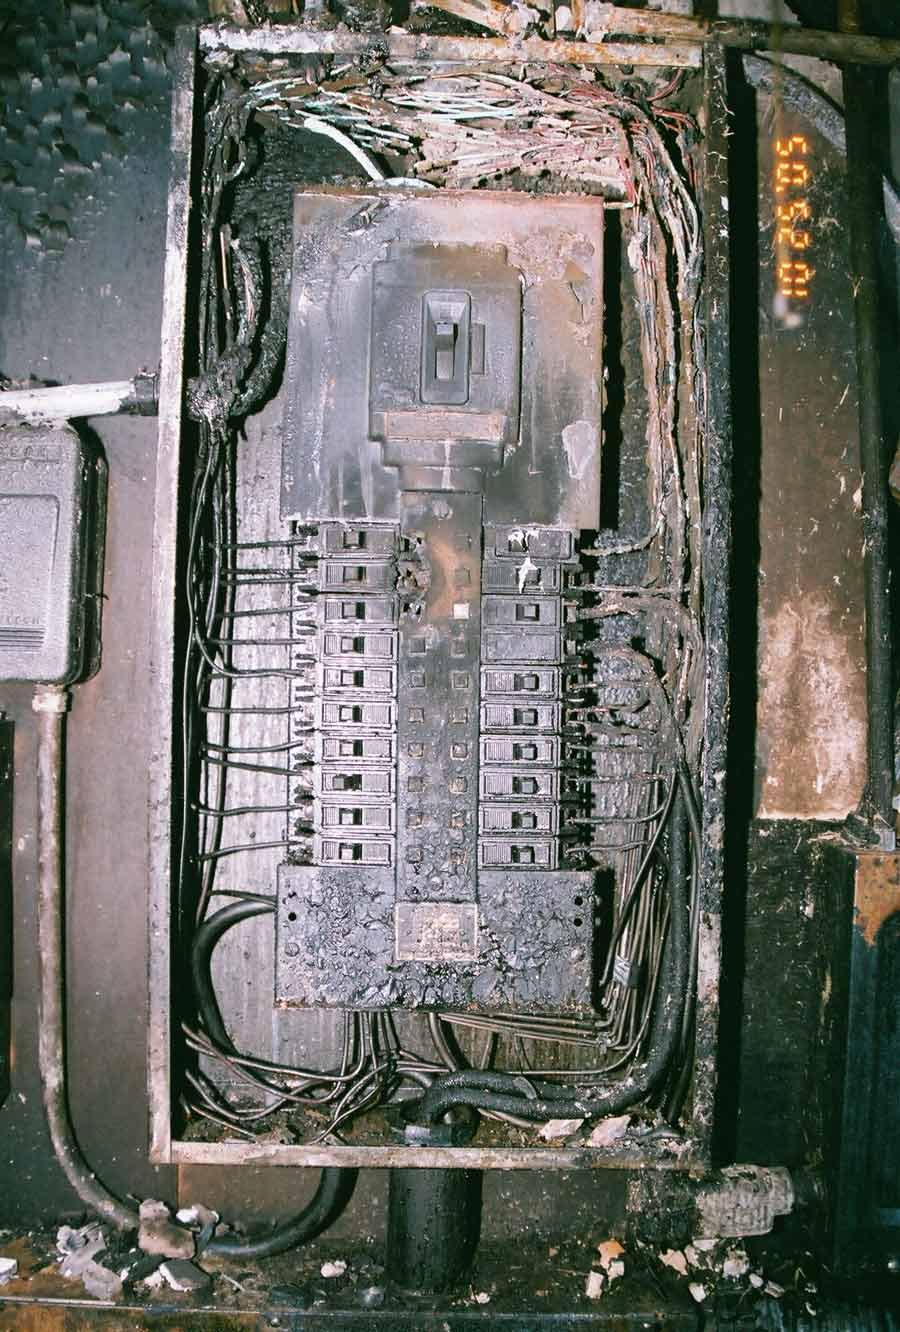 Electrical Distribution Panels Circuit Breaker Fires Ge Fuse Box Pull Outs Severe Arcing In Panel